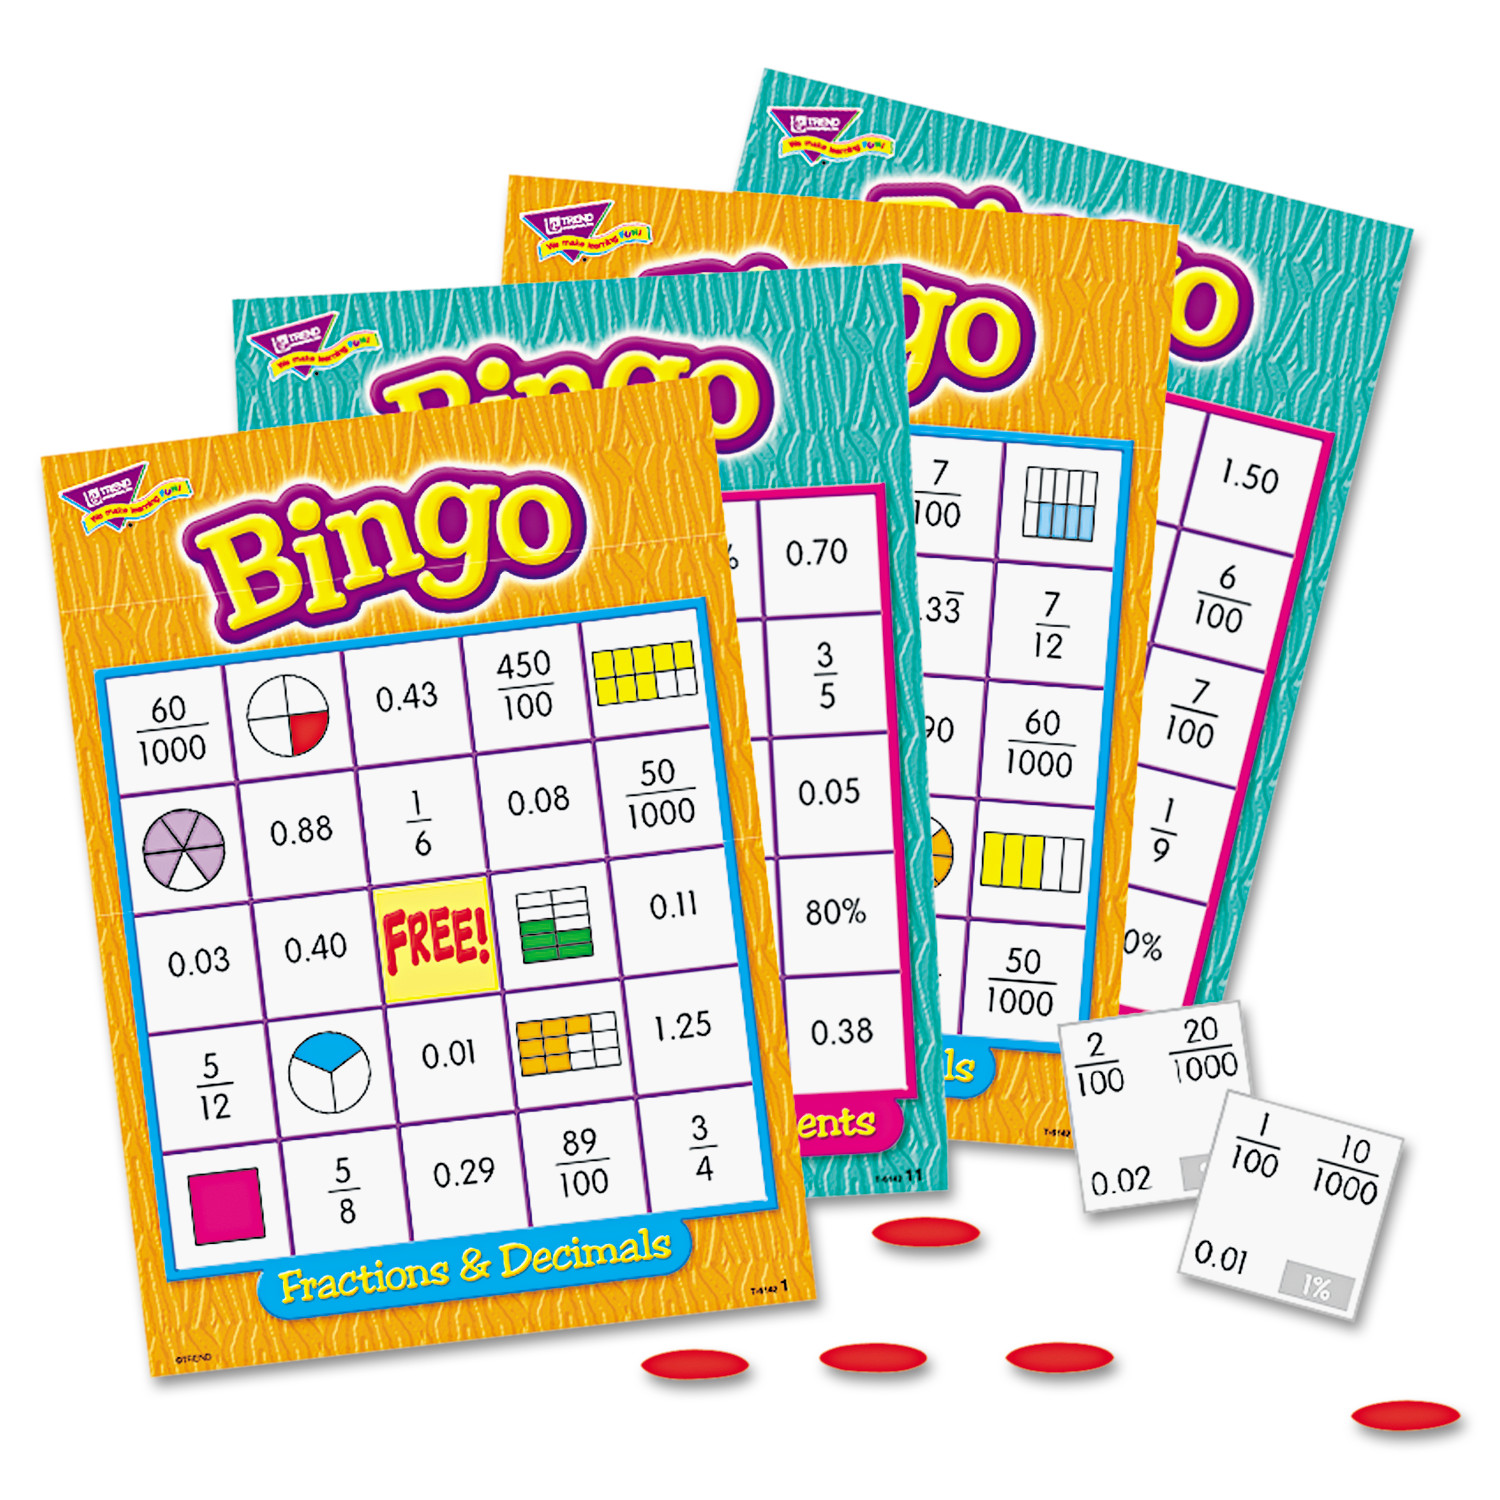 TREND Bingo Game, Fractions